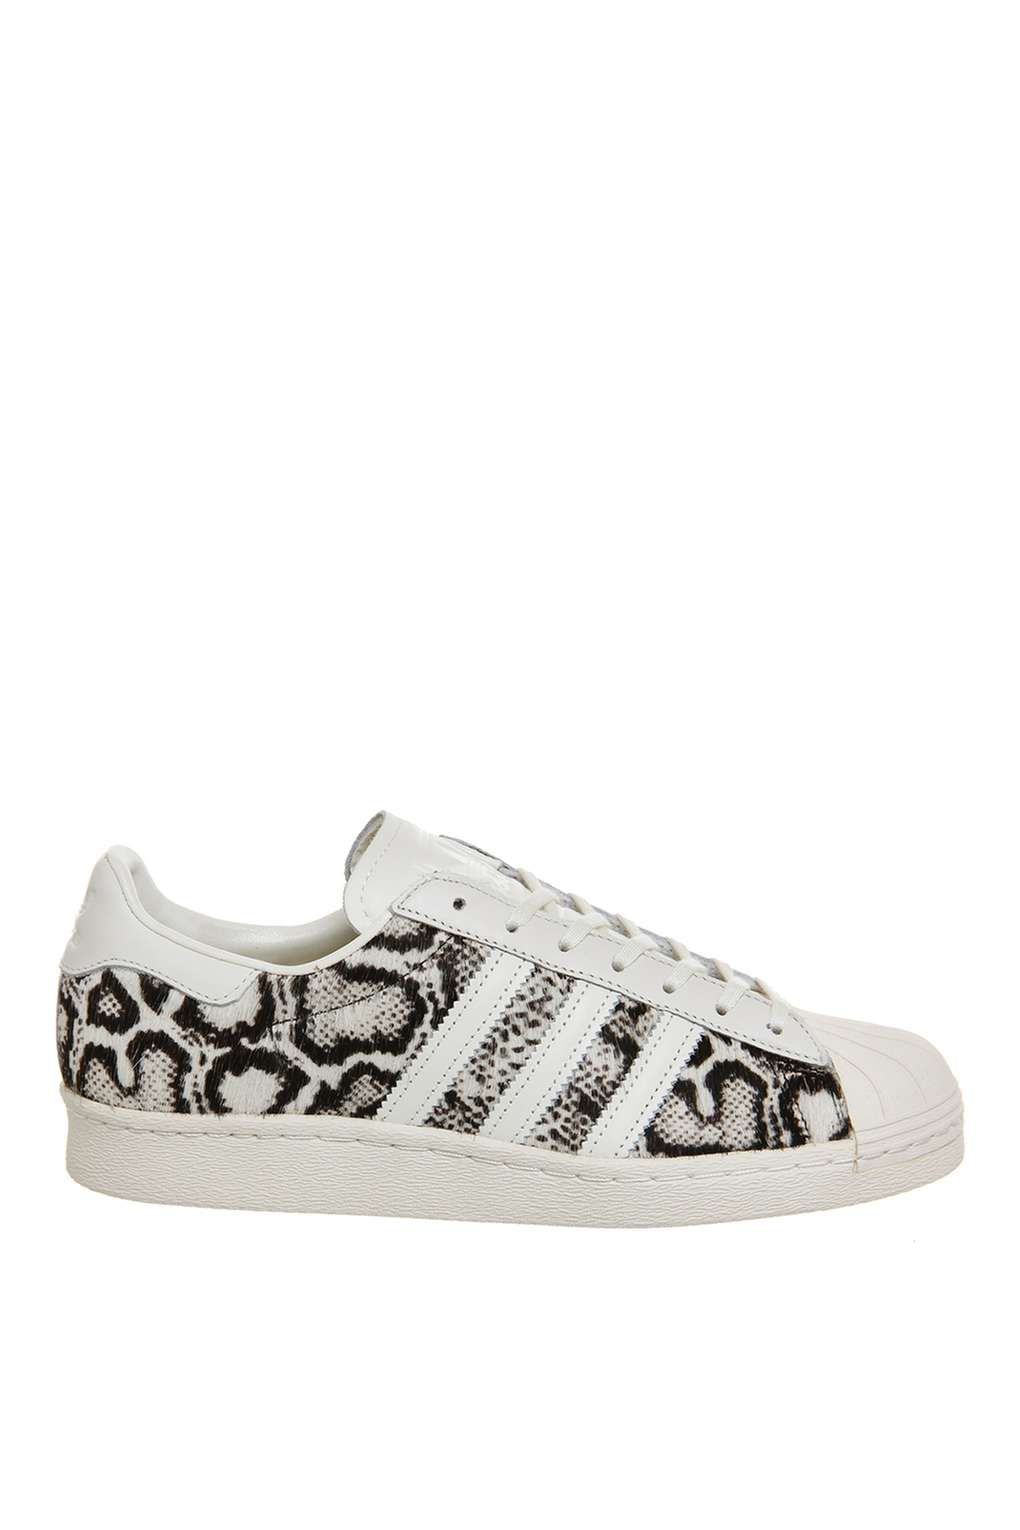 competitive price 3d3a7 8a5c0   Superstar  80s Trainers by Adidas Originals - Shoes- Topshop Europe